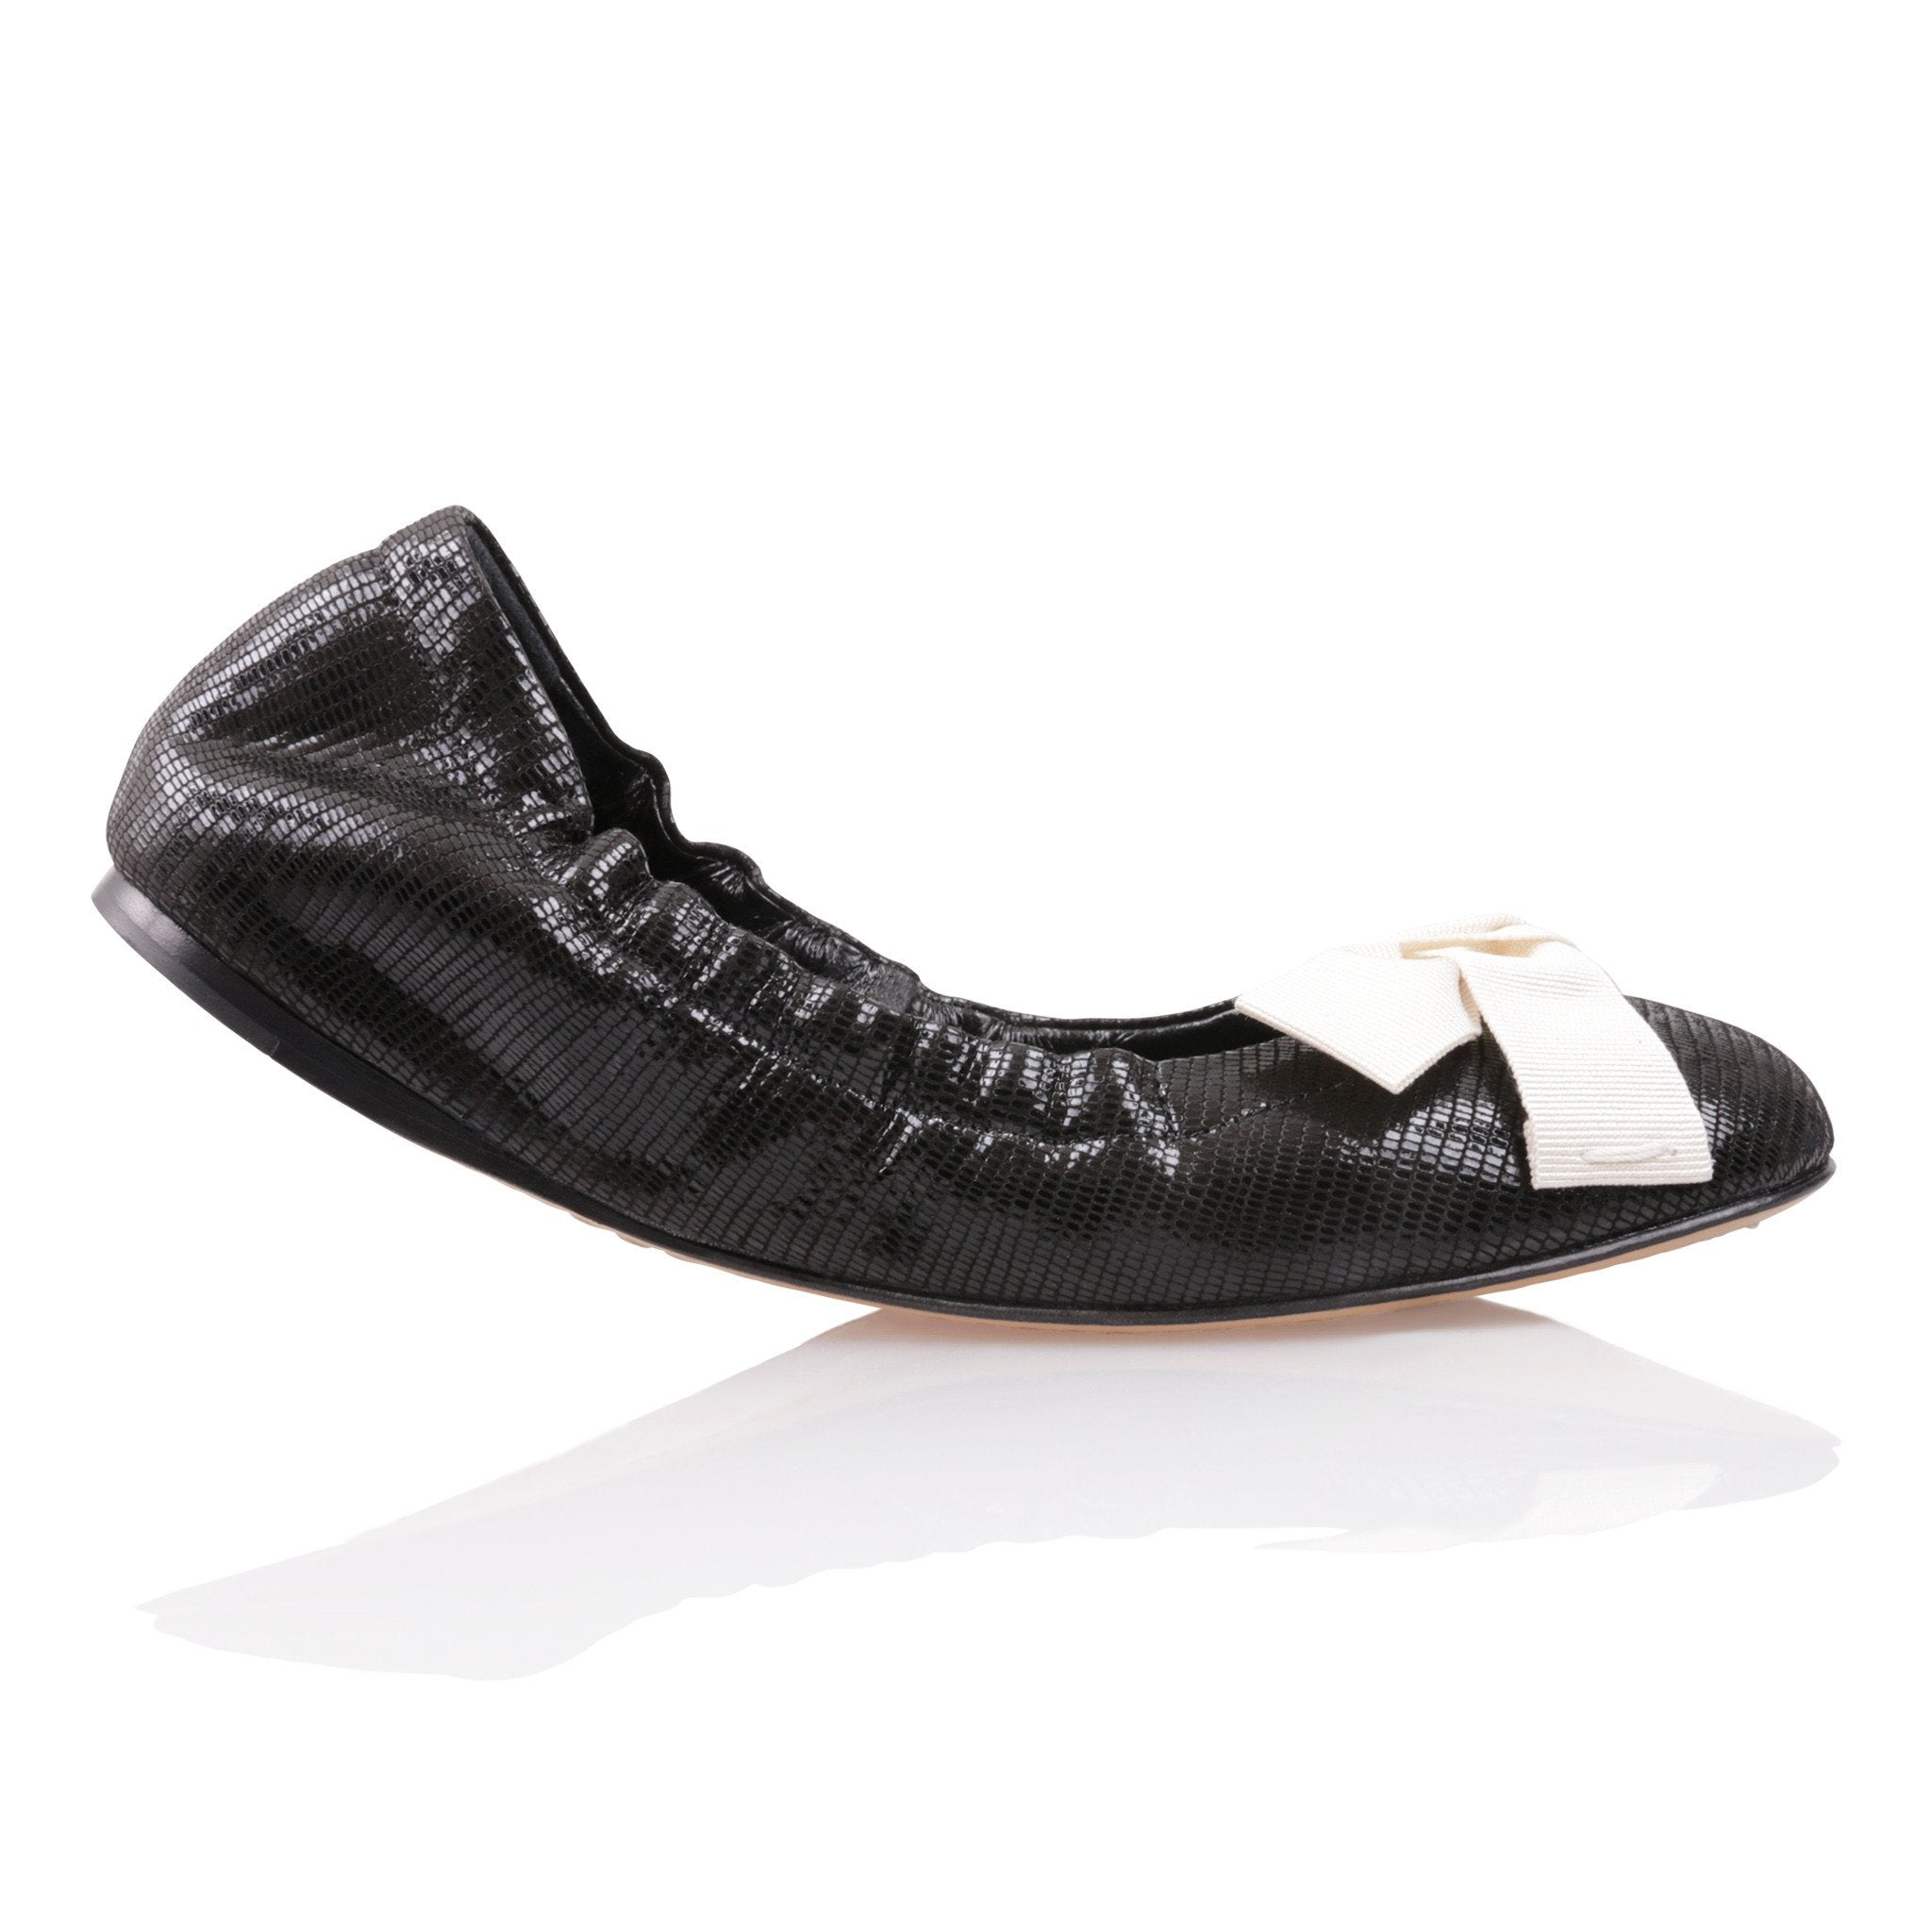 PORTOFINO - Varanus Nero + Grosgrain Panna Bow, VIAJIYU - Women's Hand Made Sustainable Luxury Shoes. Made in Italy. Made to Order.